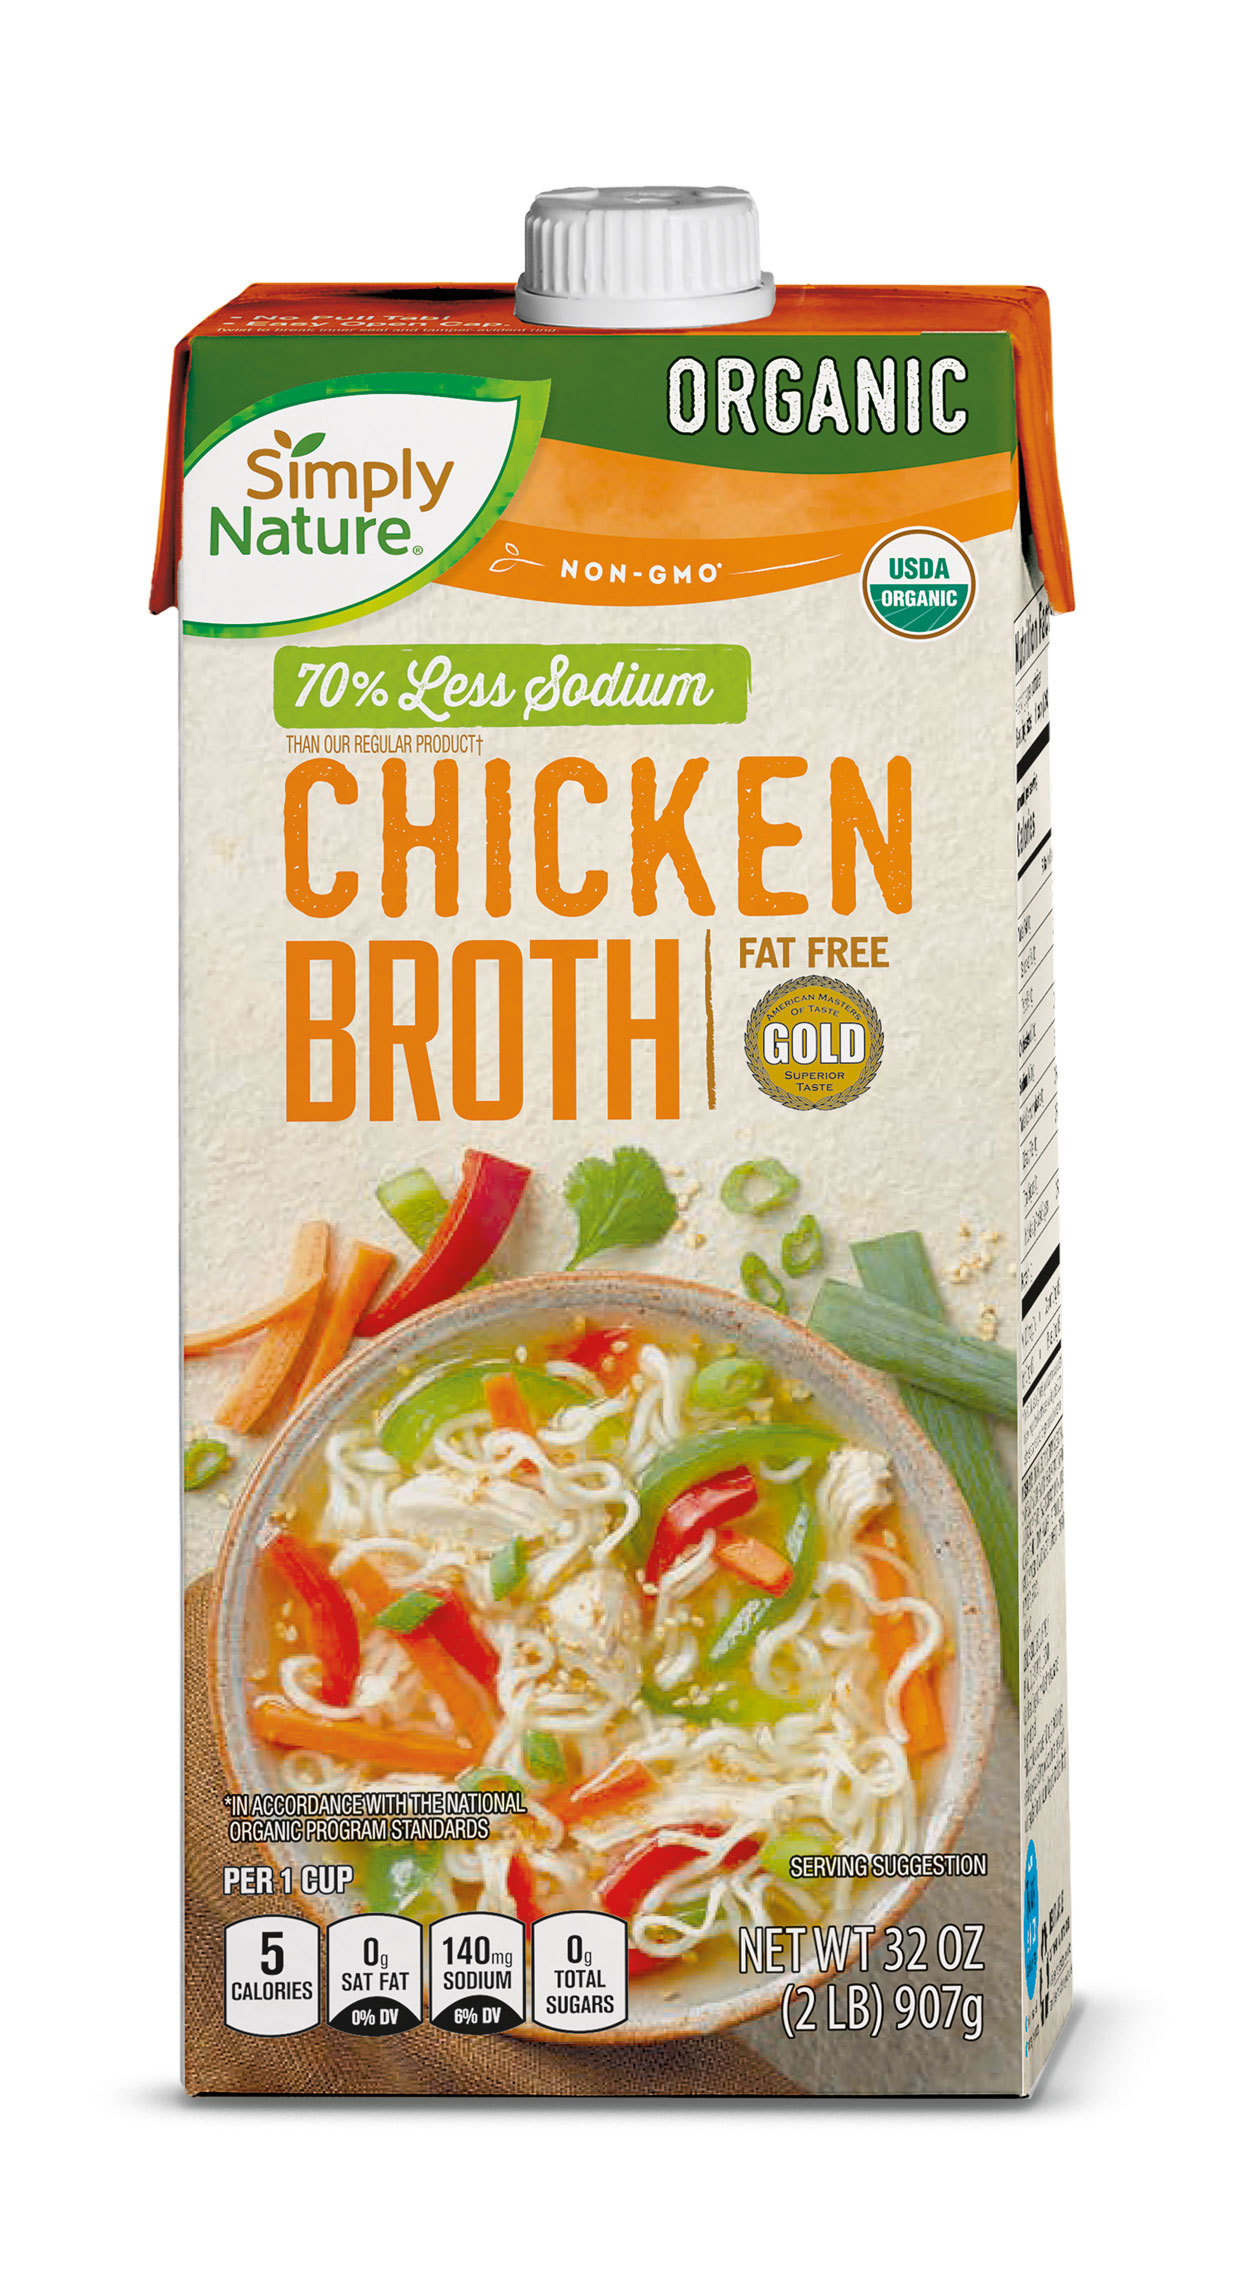 Simply Nature brand Chicken Broth in a box